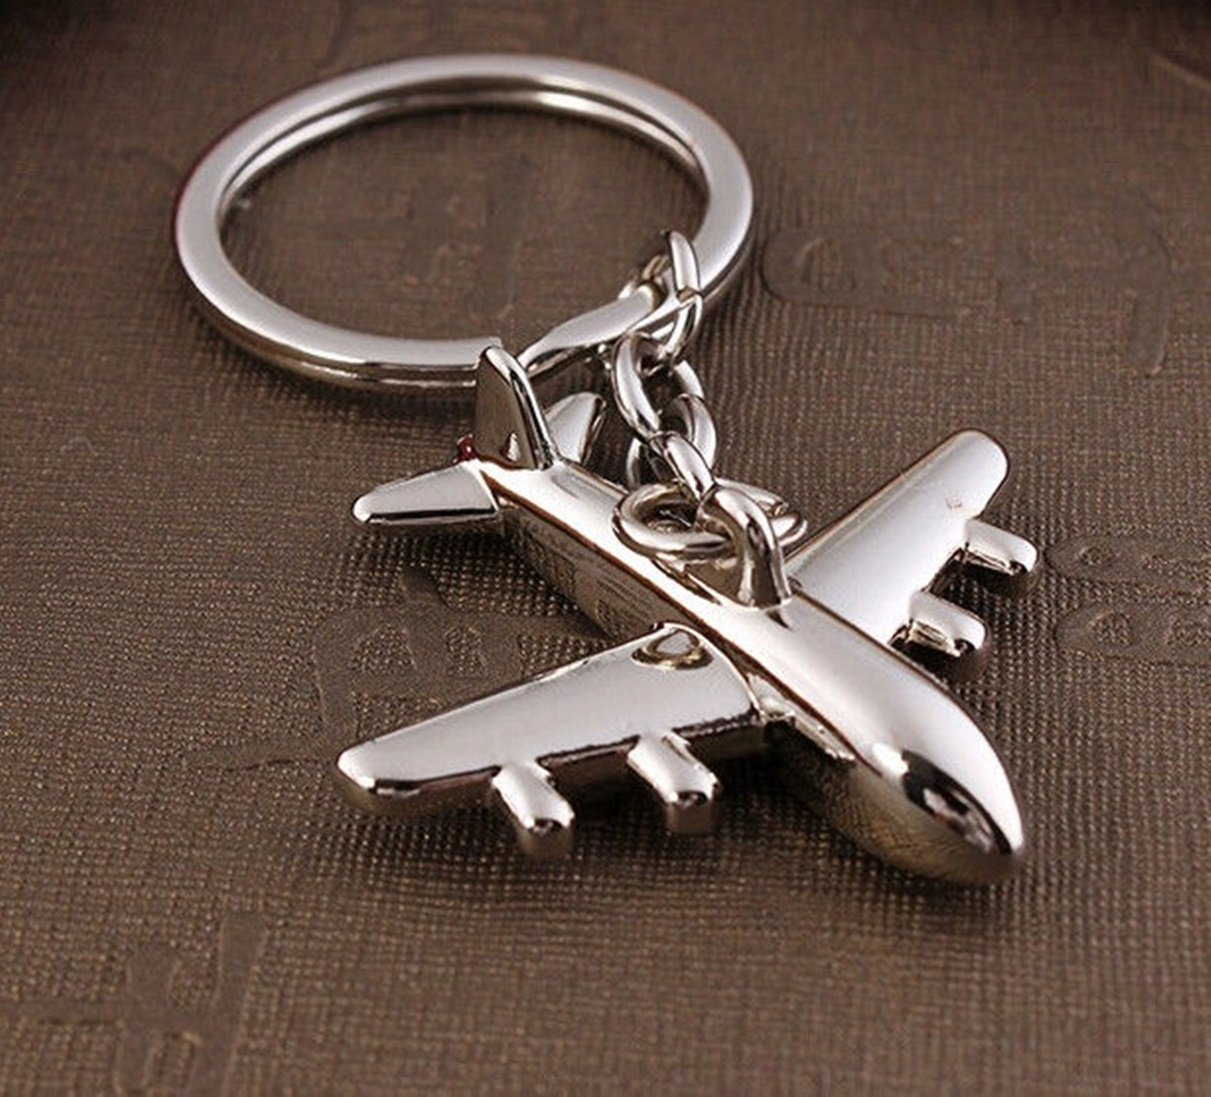 1 Pc Lavish Unique Mini Pocket Creative Aircraft Air Aviation Plane Airplane Cute Bottle Opener Women Teen Gift Color Silver by Chiam-Mart